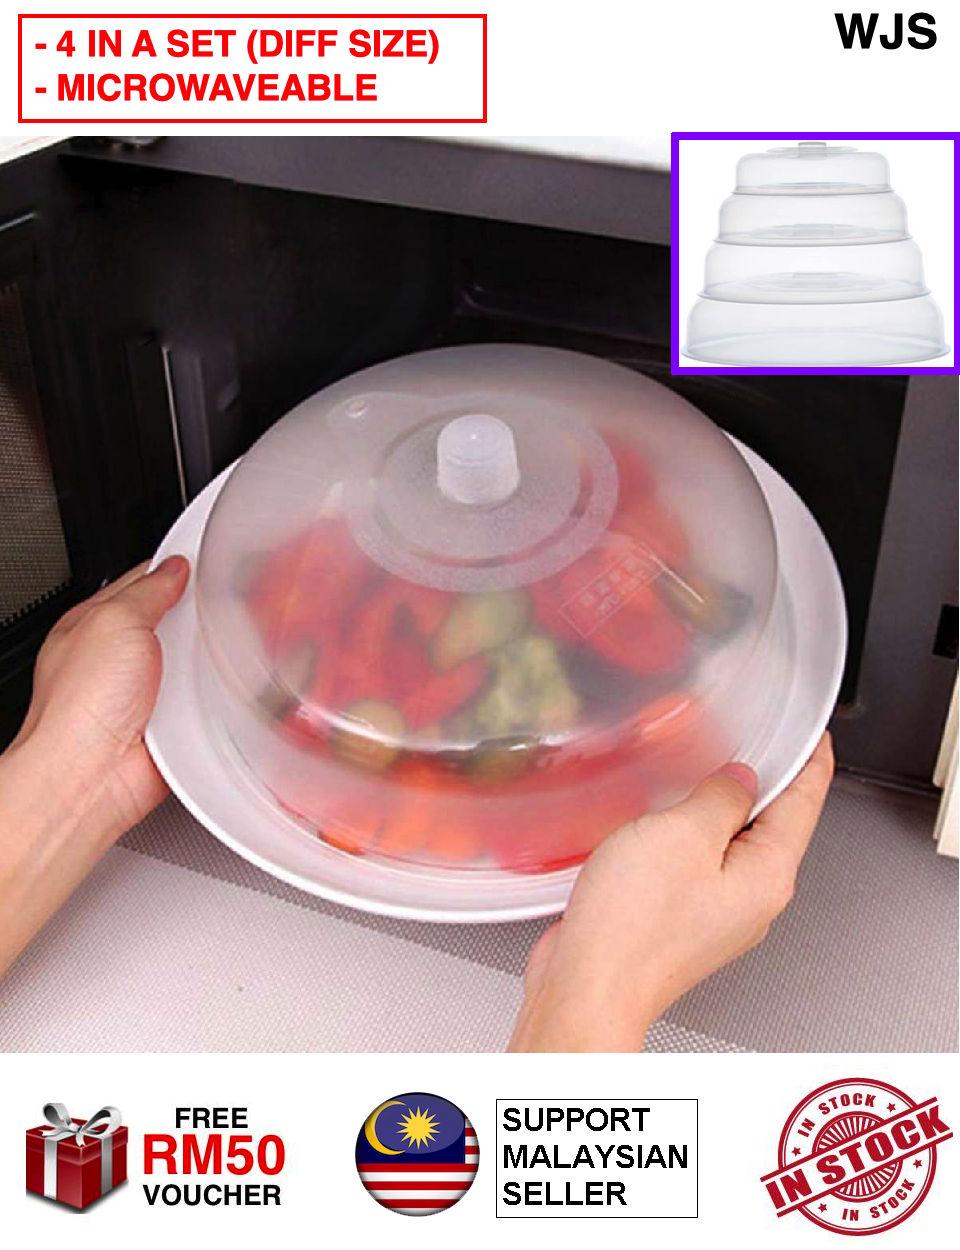 (4 UNIQUE SIZES IN A SET) WJS 4pcs 4 pcs Premium PVC Microwave Food Cover Plate Vented Splatter Protector Clear Kitchen Lid Vent Table Food Cover Table Cover Fine Dining MULTIPLE SIZE [FREE RM 50 VOUCHER]